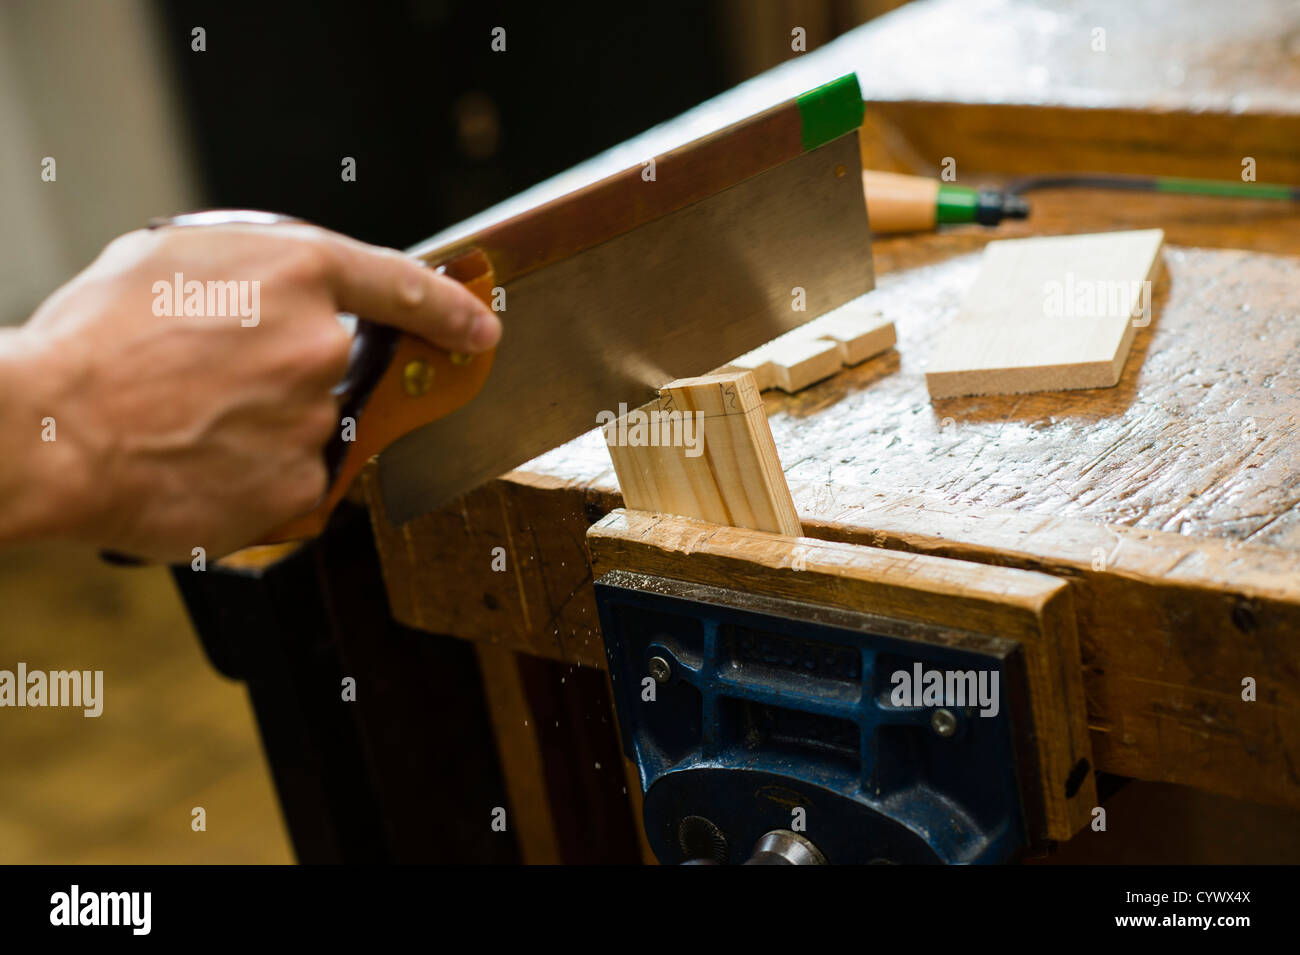 Woodwork Stock Photos Woodwork Stock Images Alamy